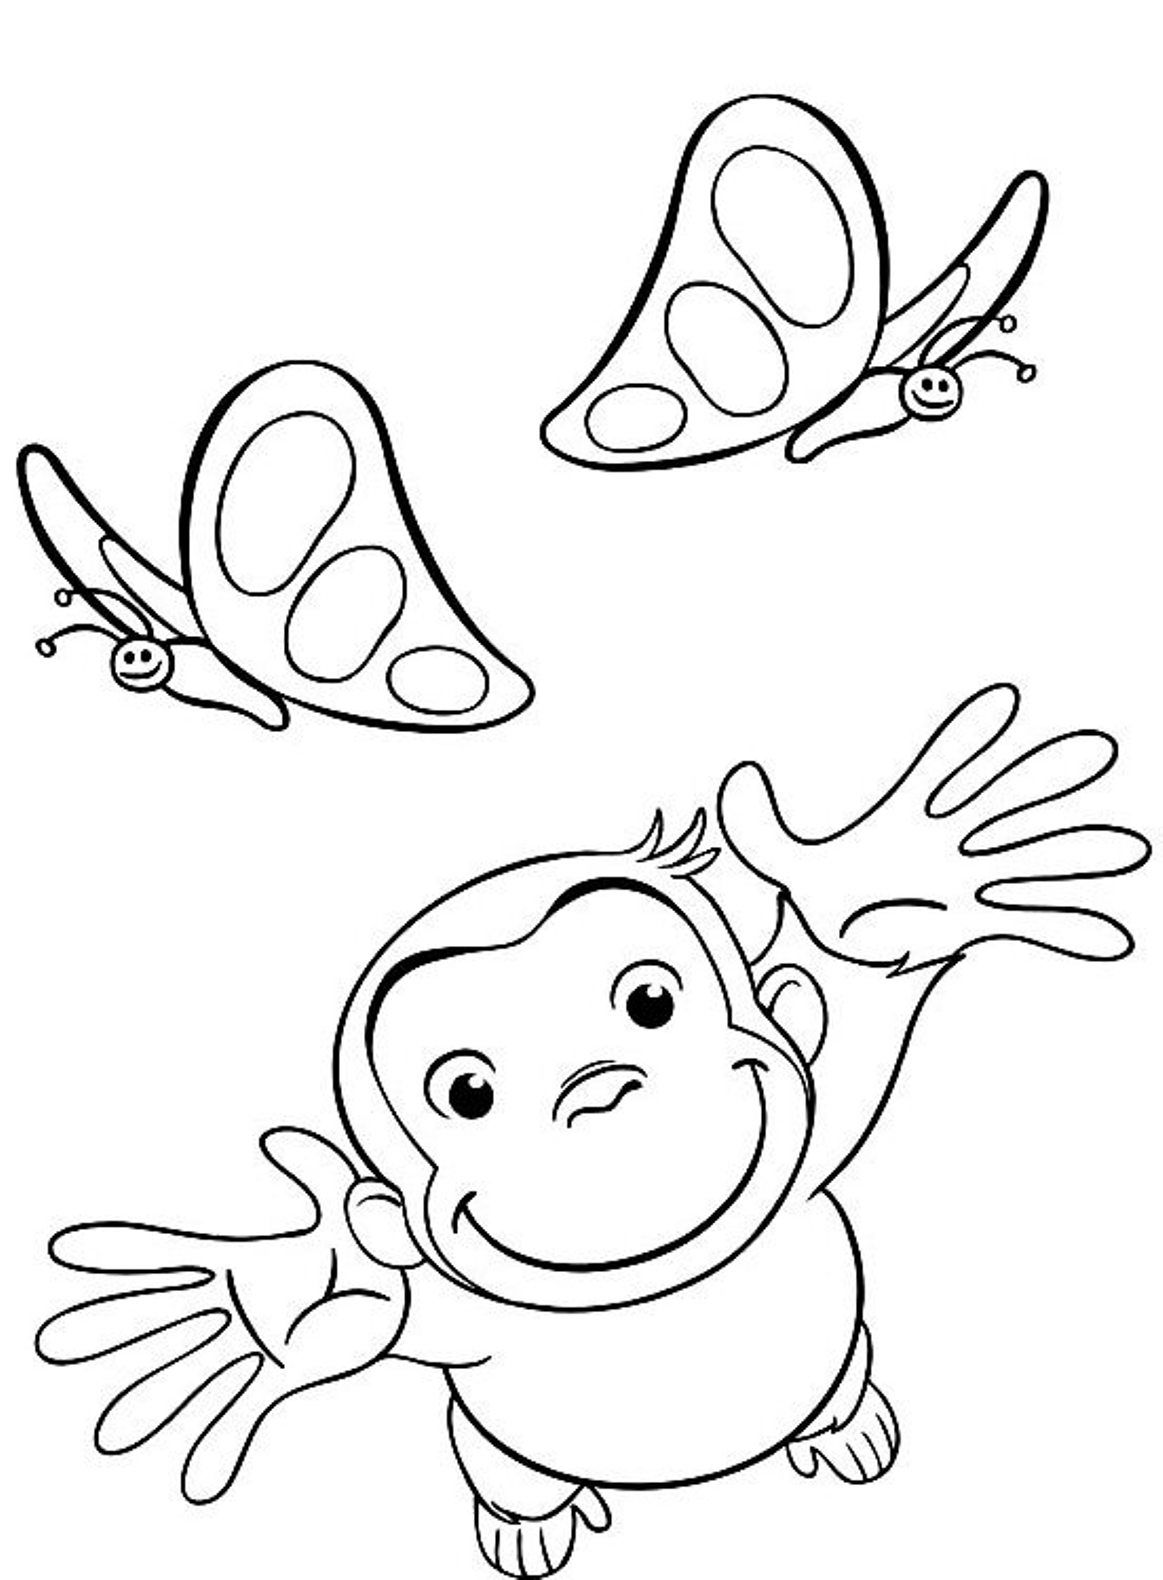 curious george coloring pages playing with butterflies | diseños ...